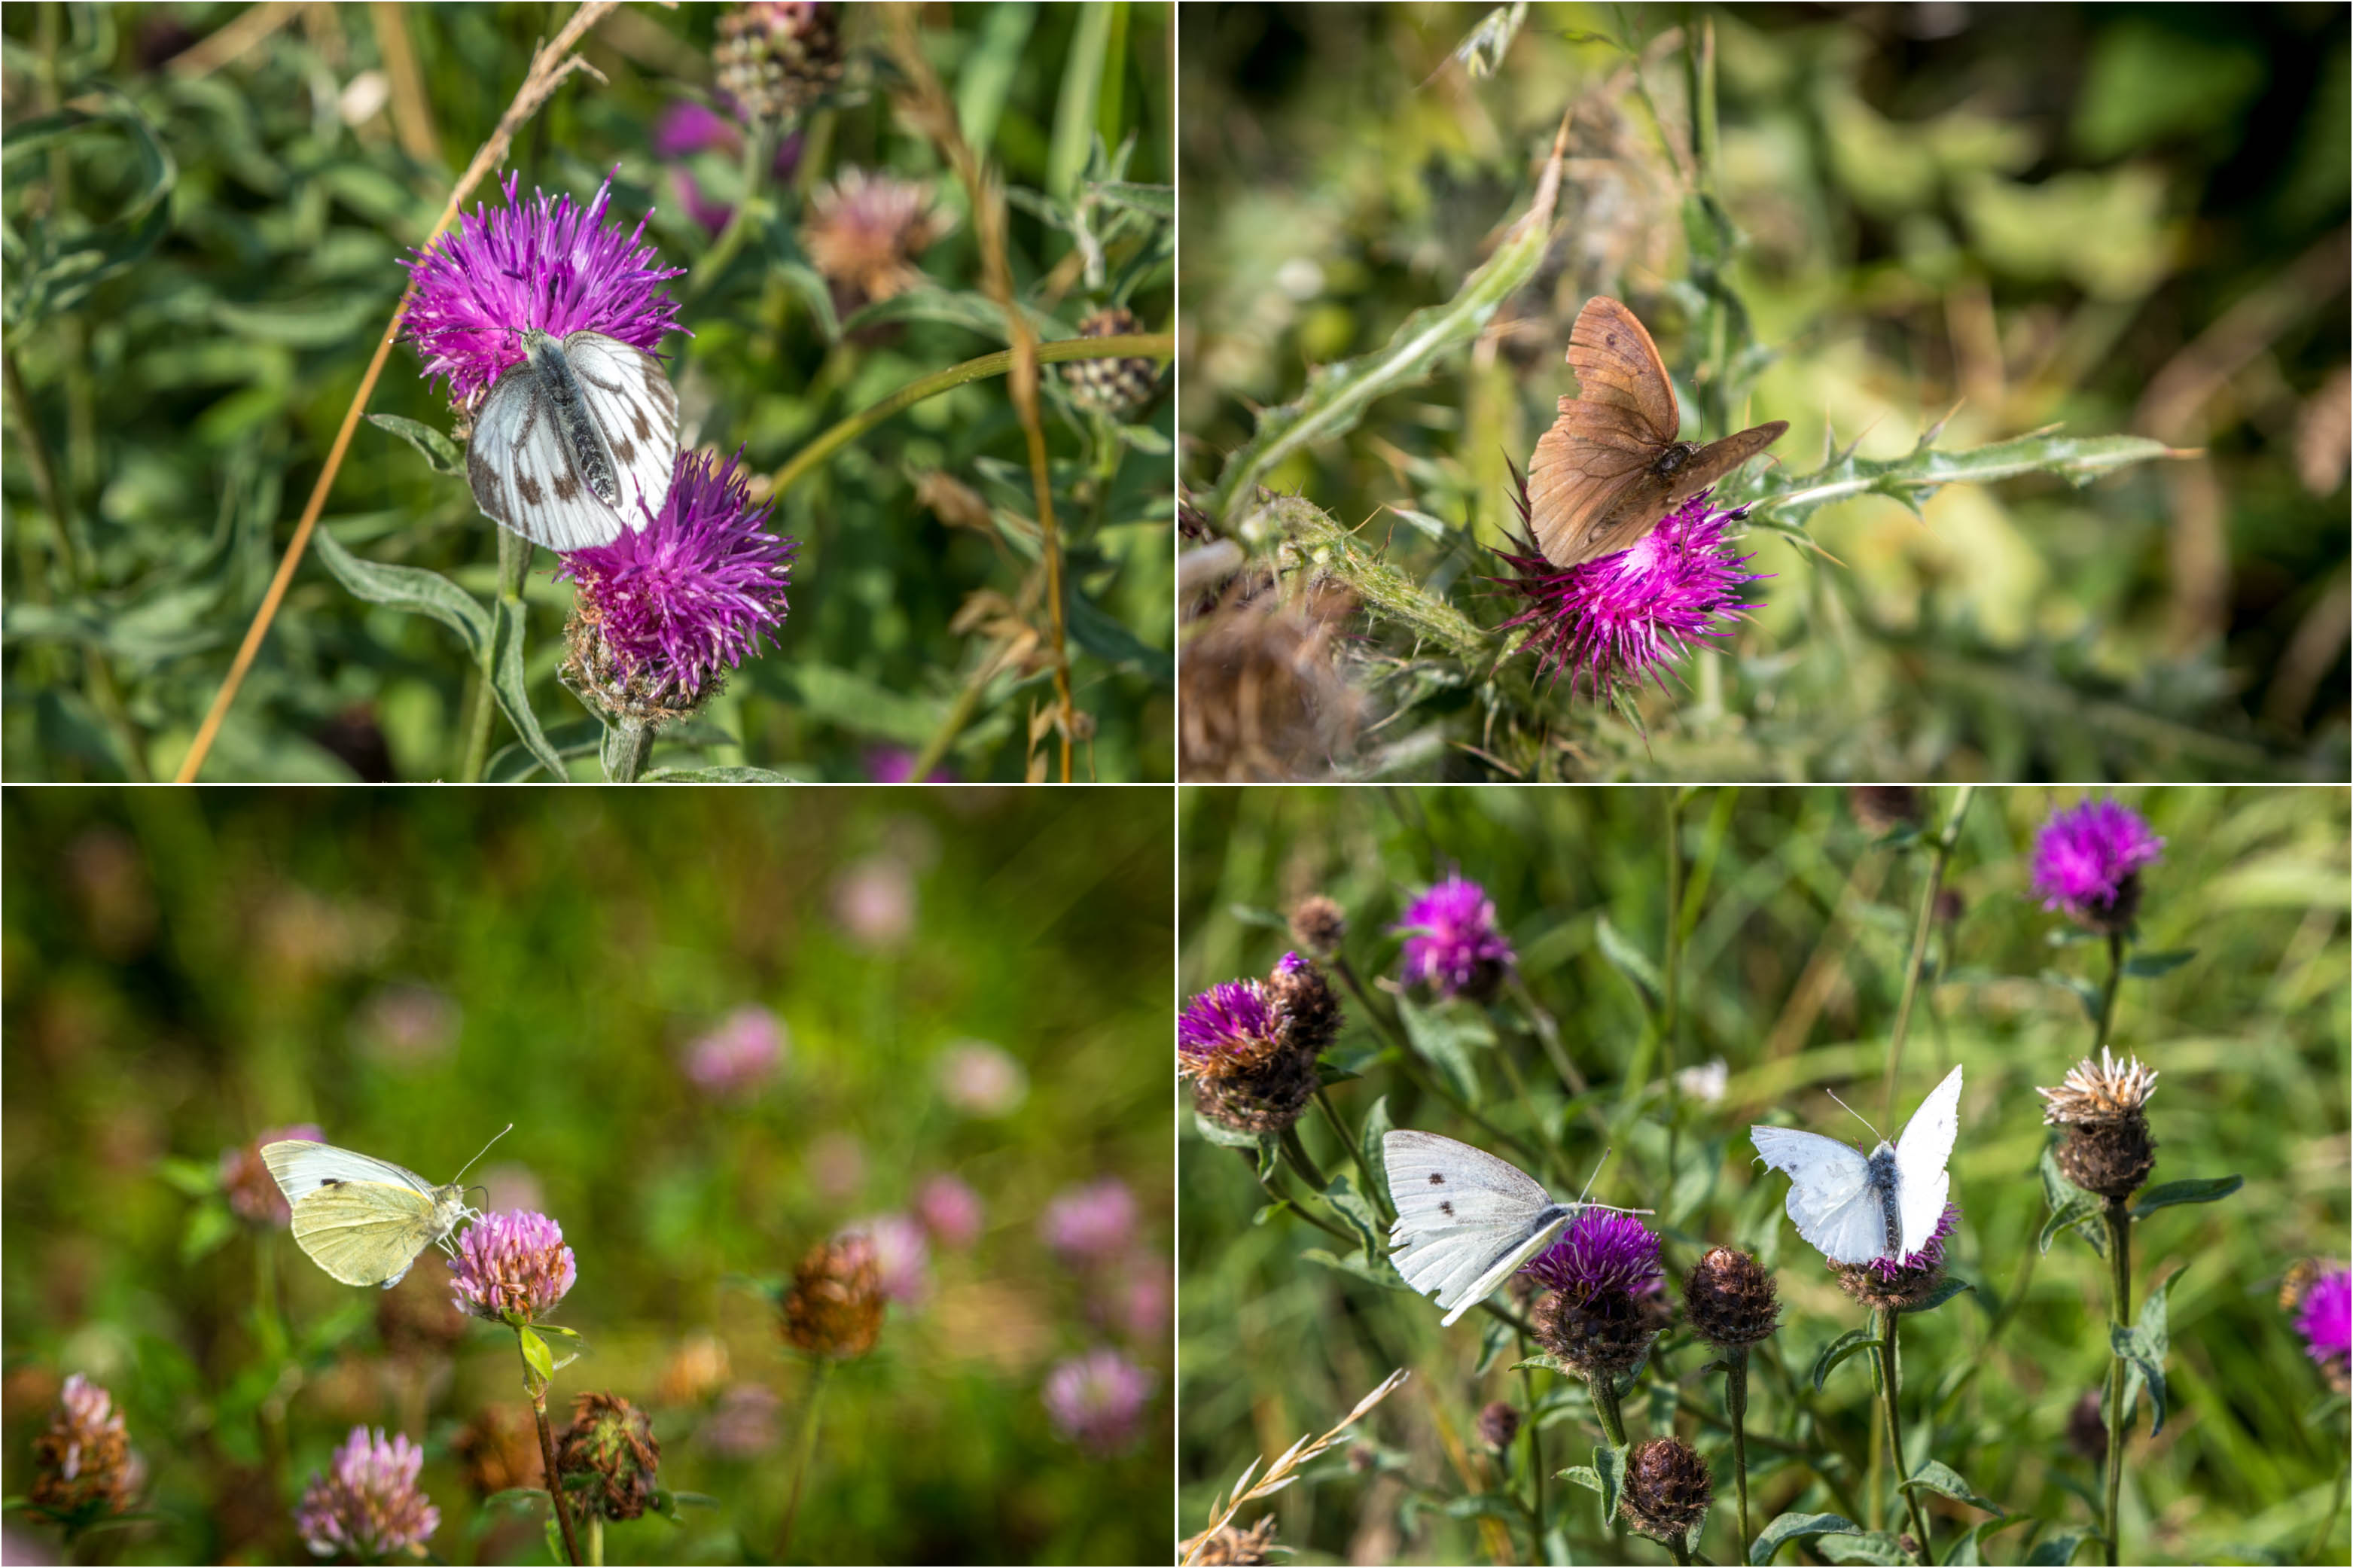 Chalkland Way butterflies